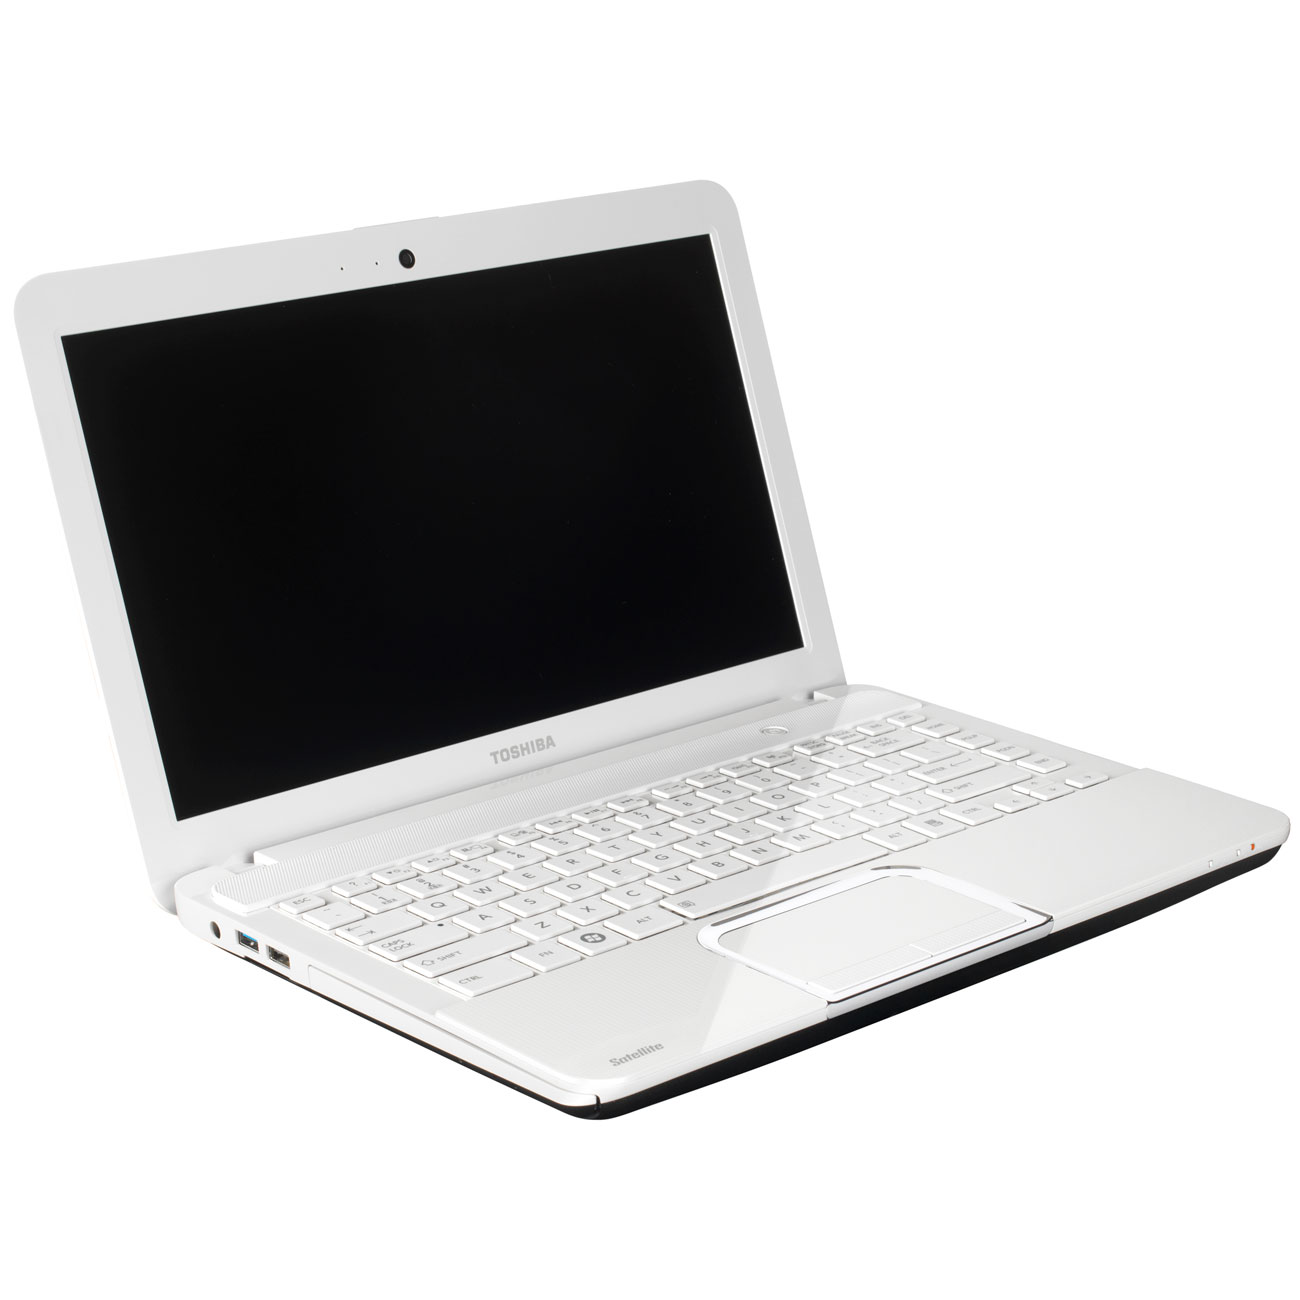 toshiba satellite l830 10p blanc pc portable toshiba sur. Black Bedroom Furniture Sets. Home Design Ideas